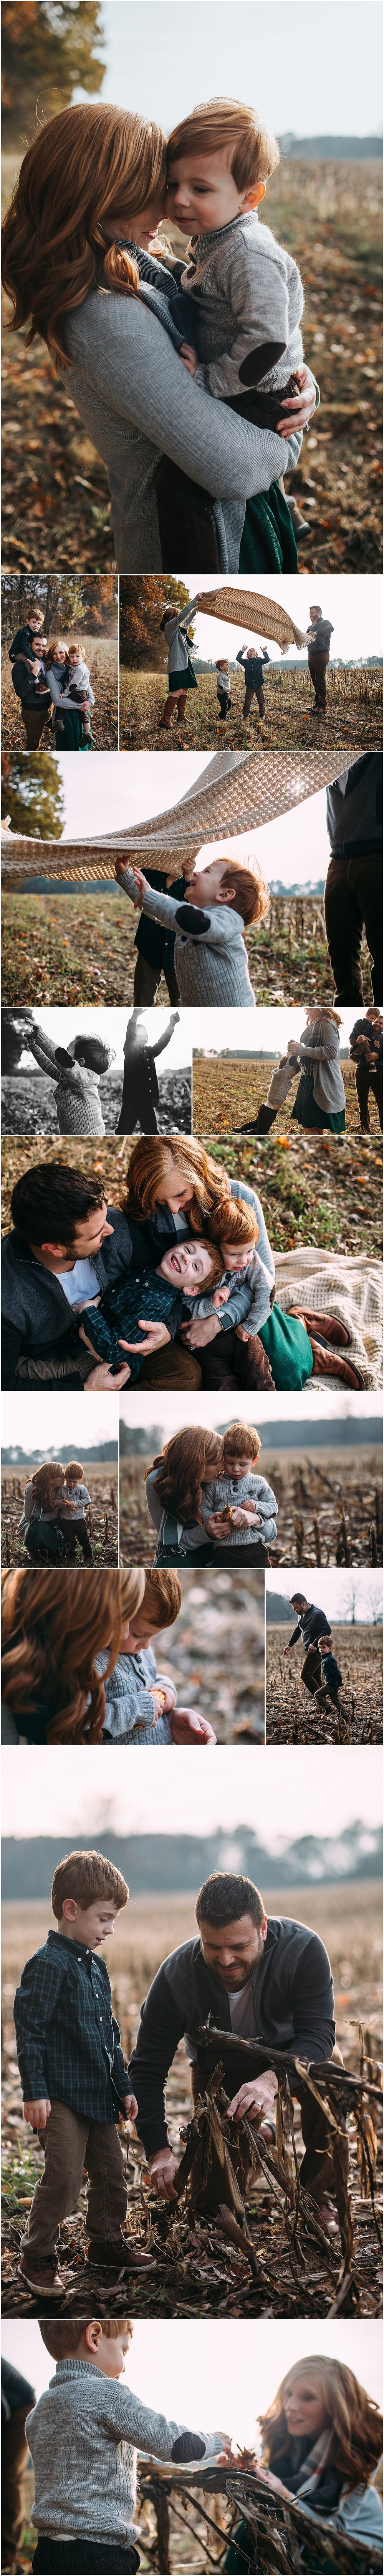 fall family photo session in kalamazoo michigan